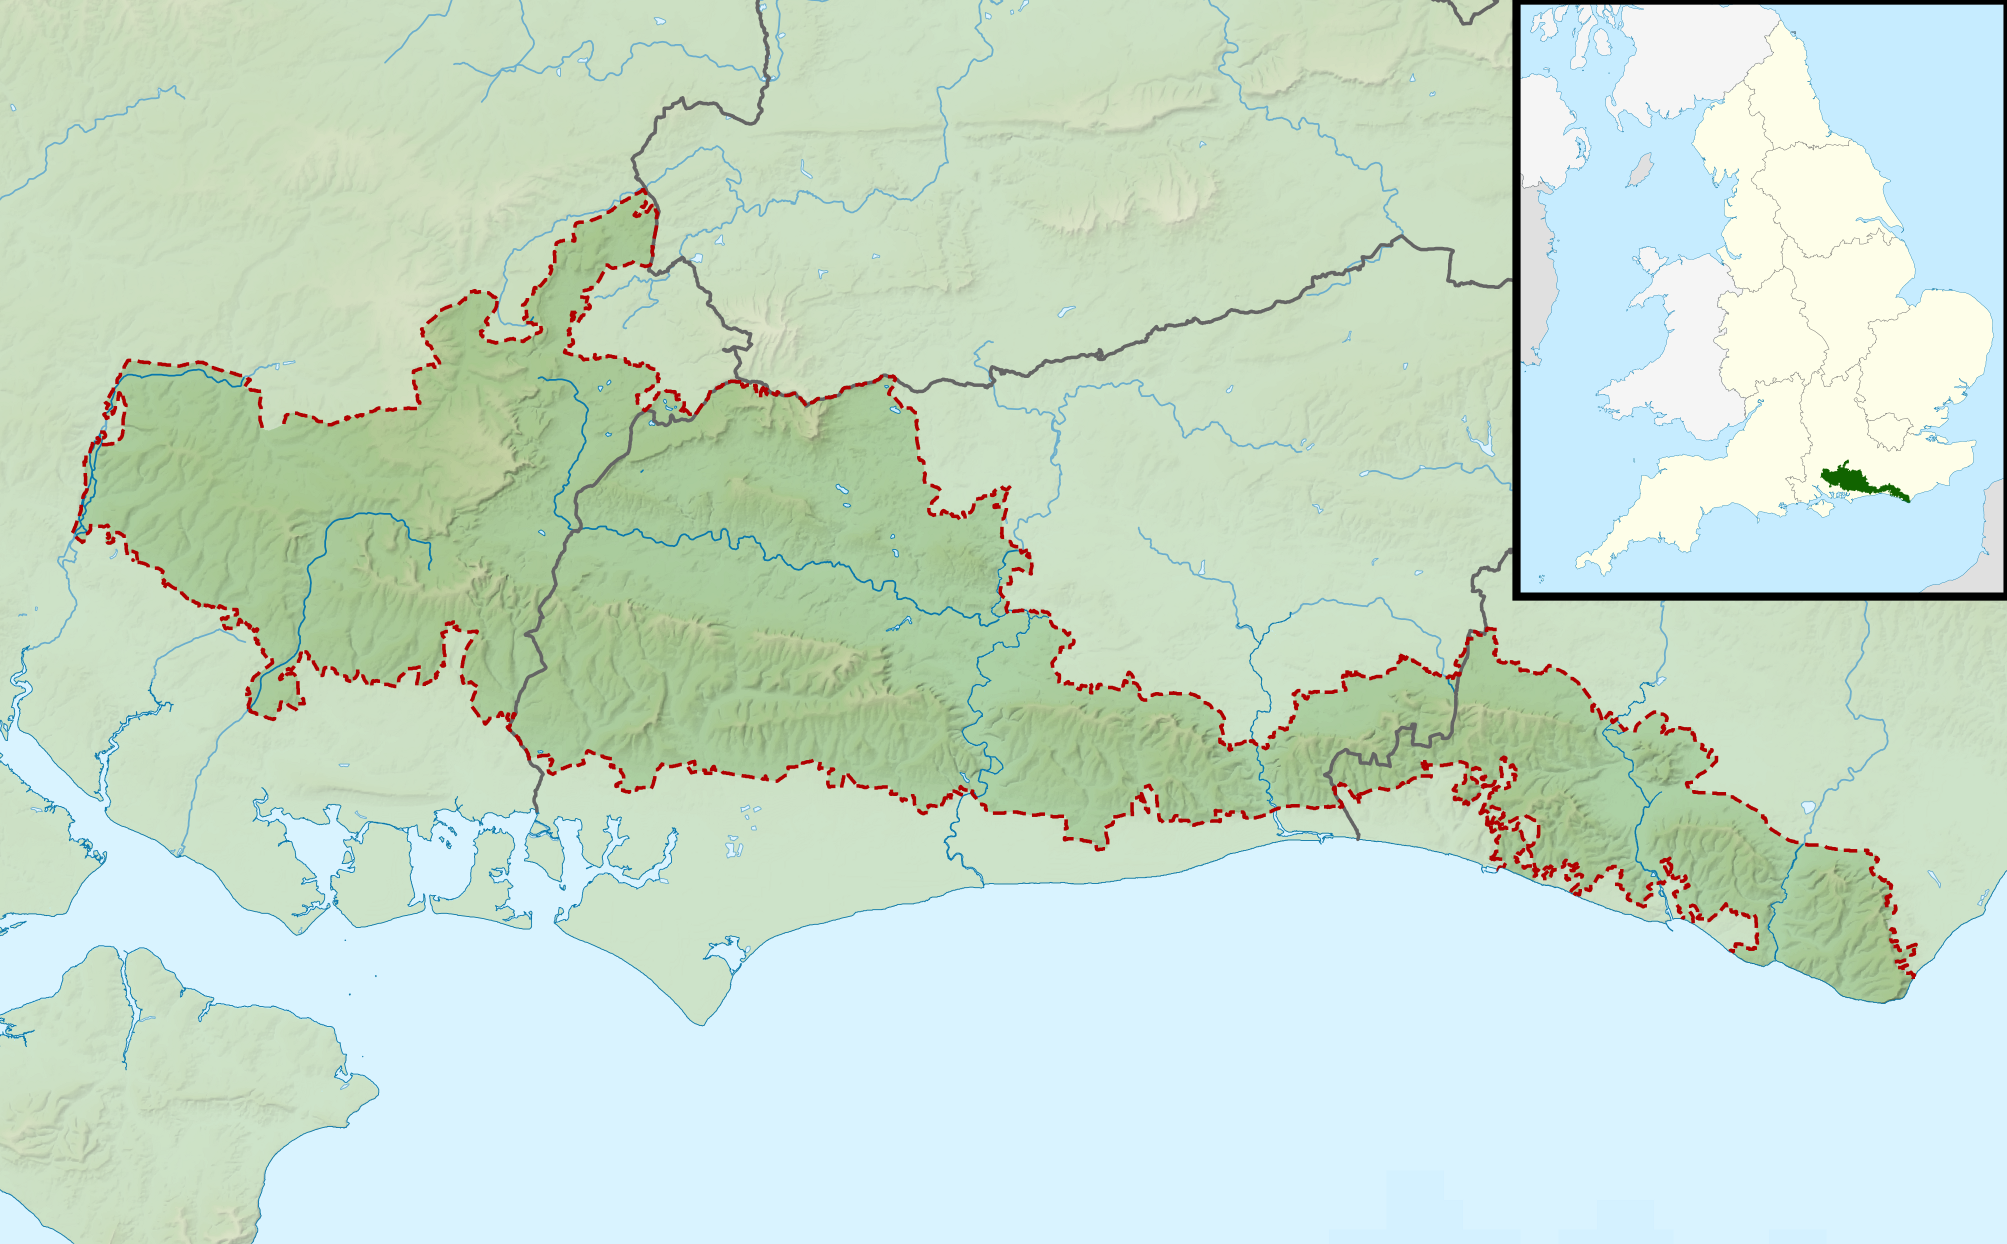 South Downs National Park Map File:South Downs National Park UK relief location map.png